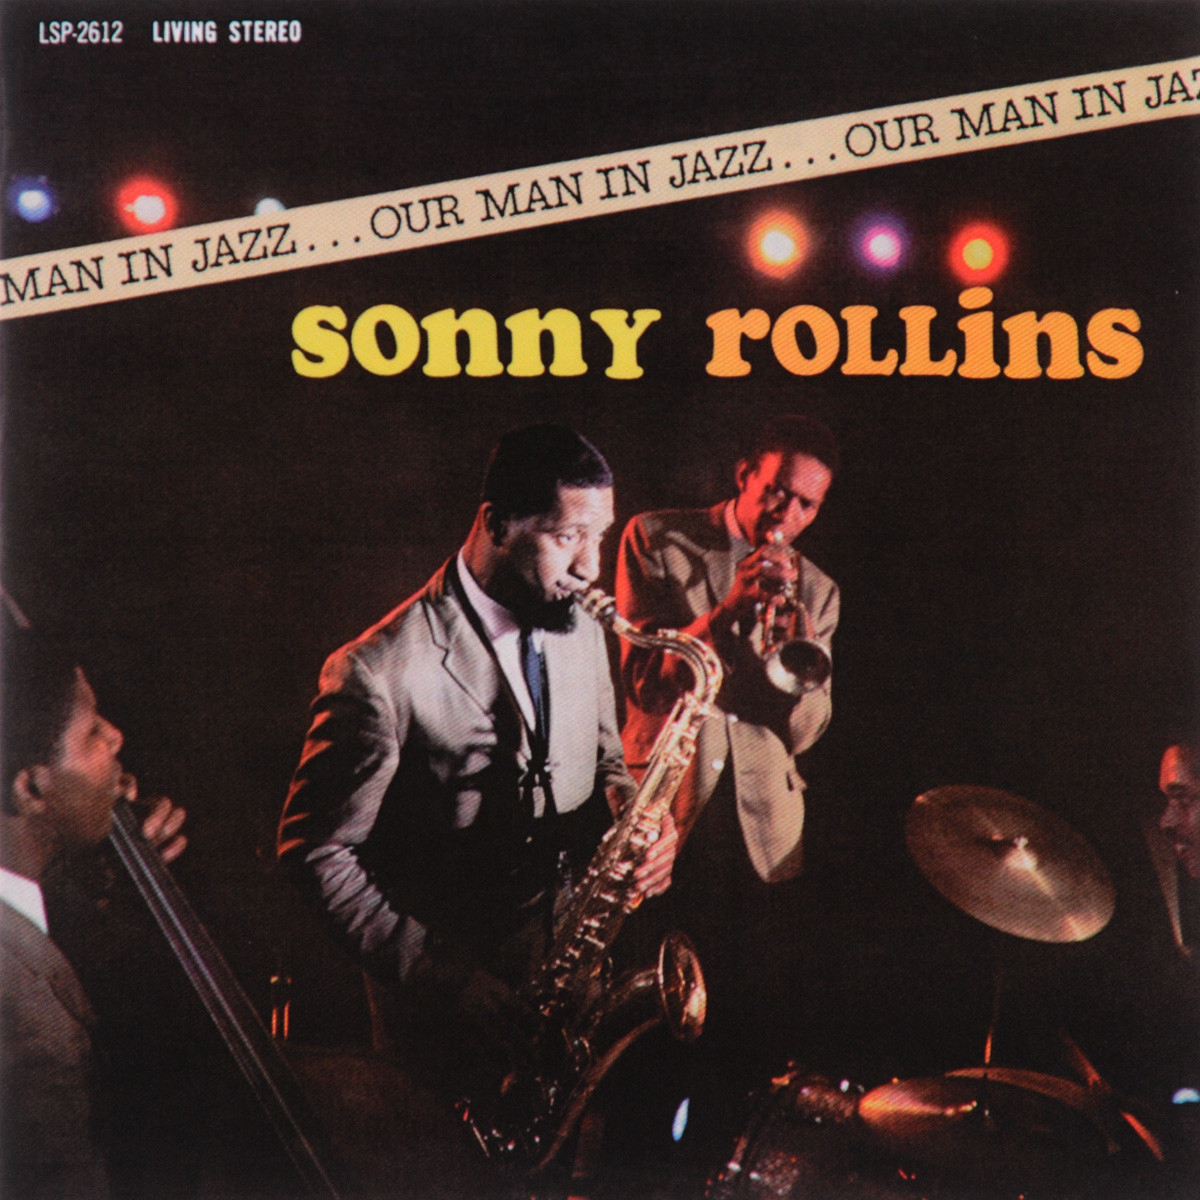 Сонни Роллинз Sonny Rollins. Our Man In Jazz сонни роллинз sonny rollins holding the stage road shows vol 4